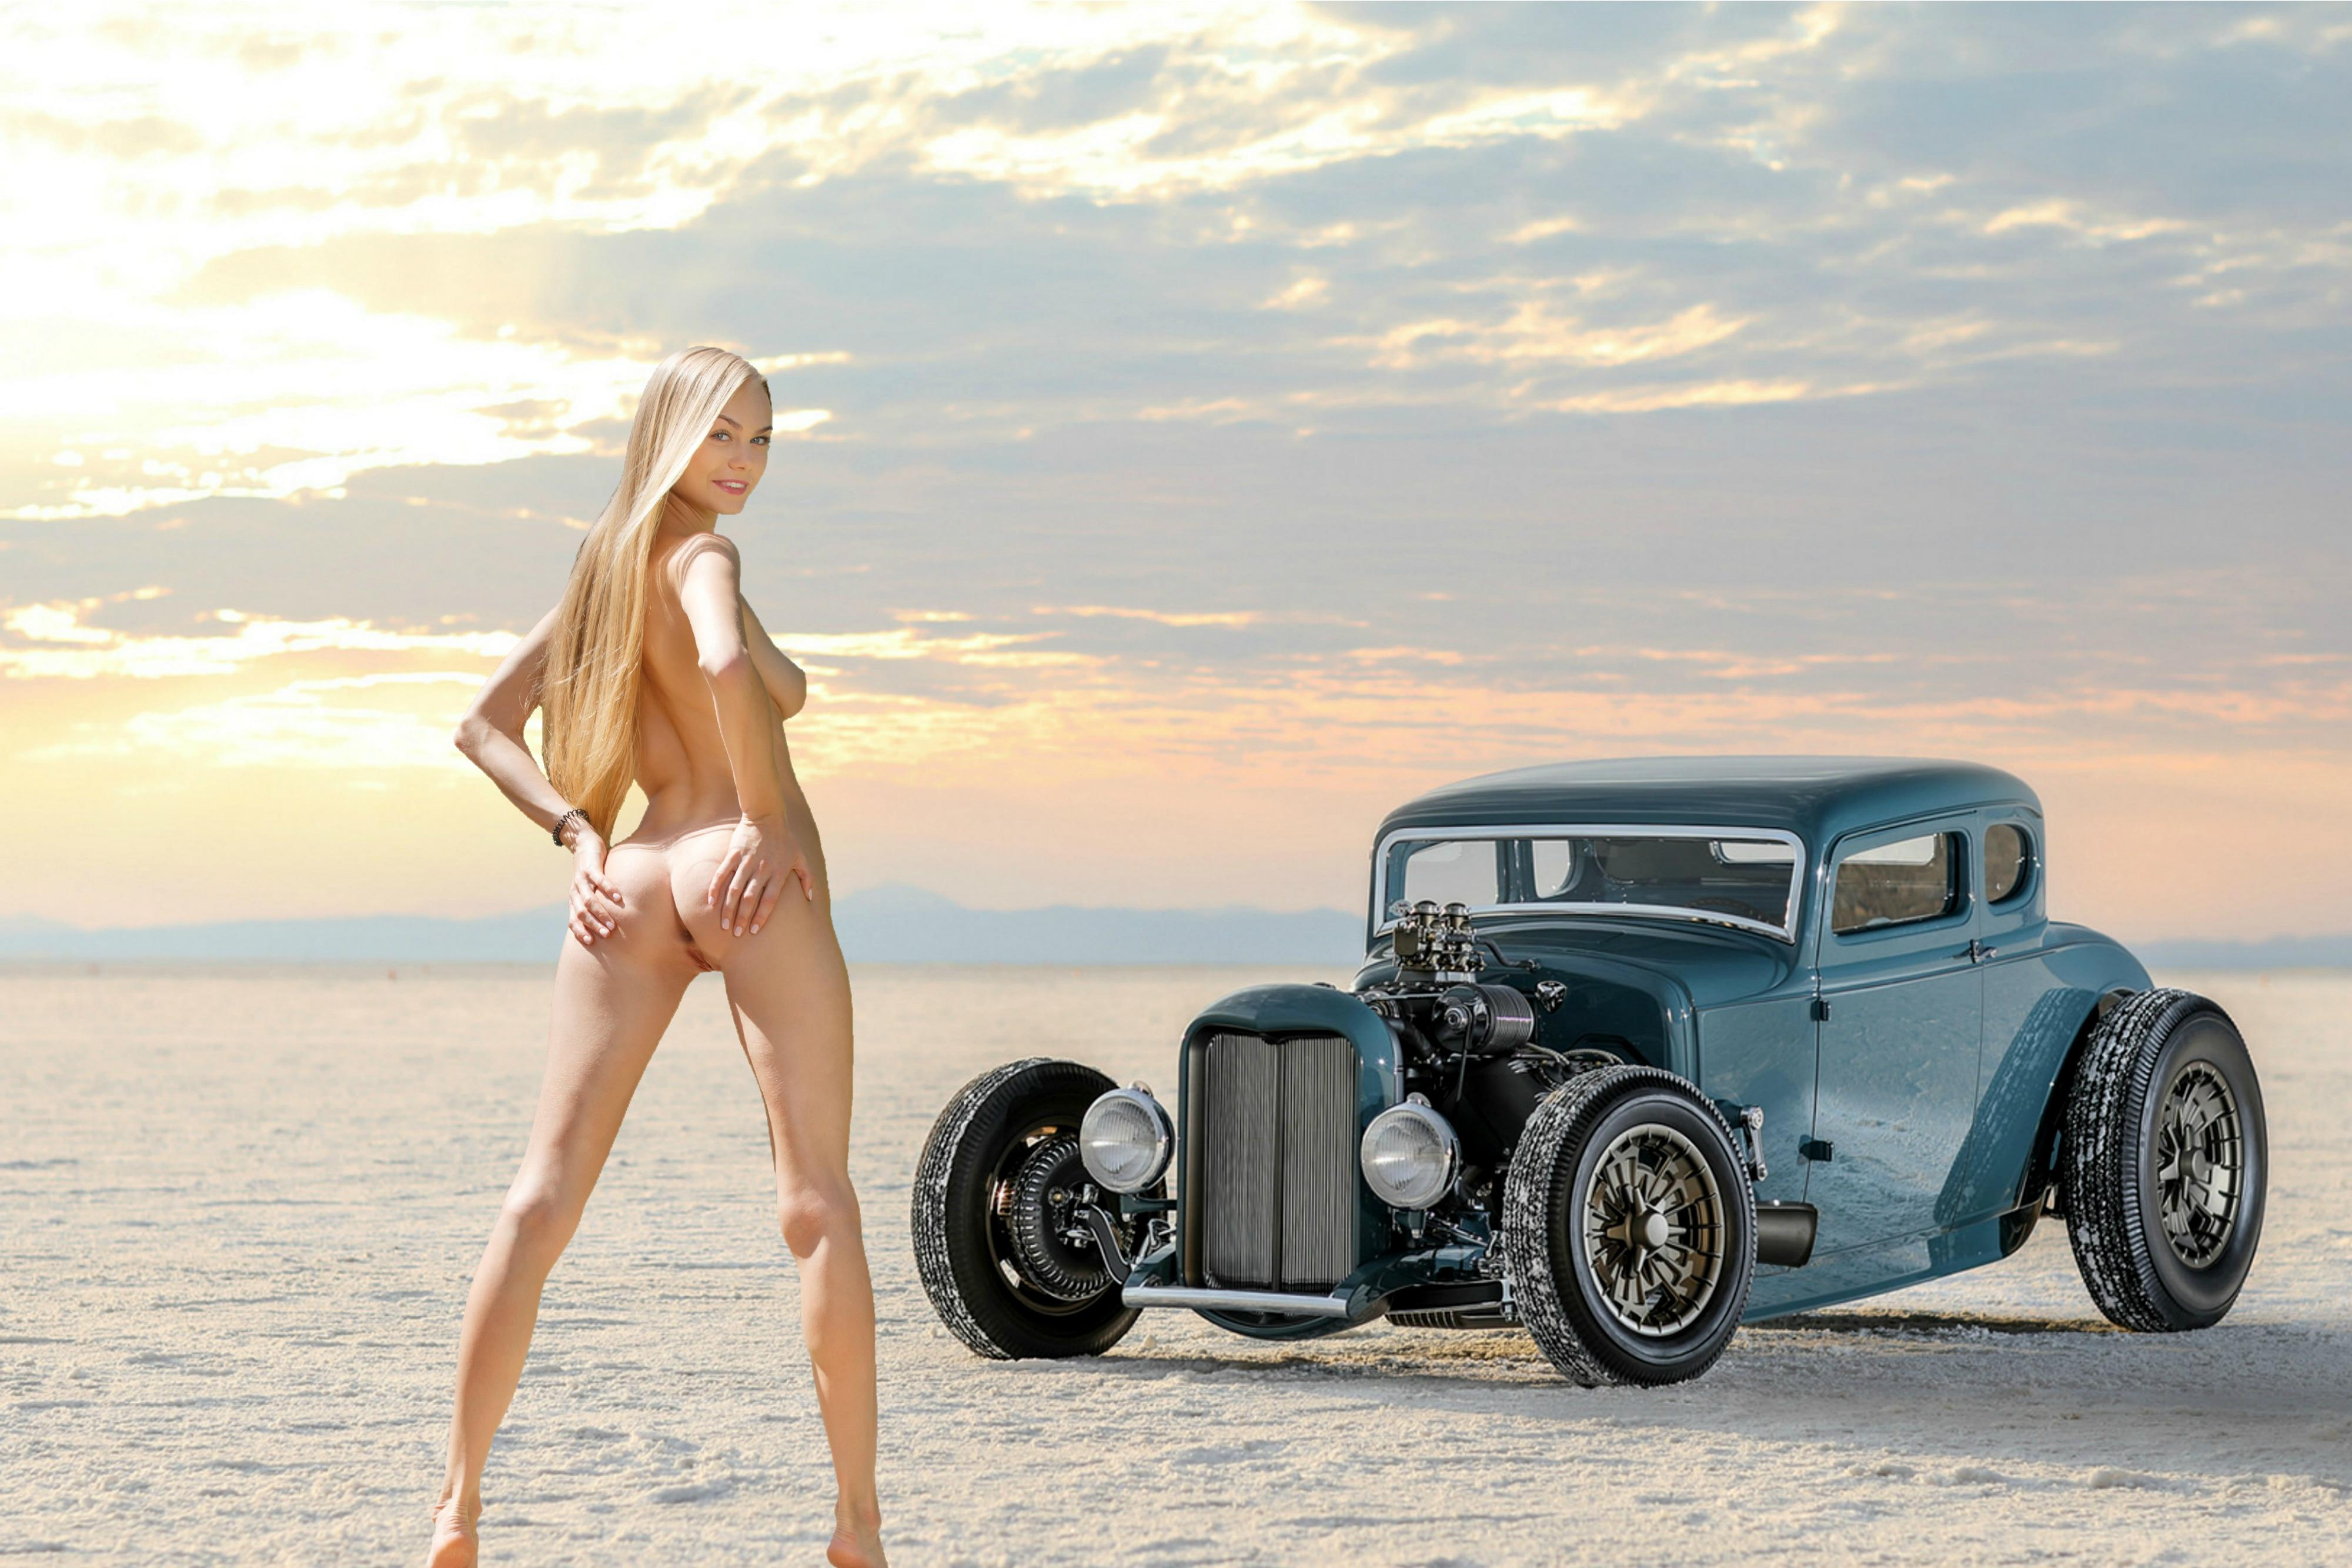 Naked hot vintage girls and hot rods, the girls of max hardcore